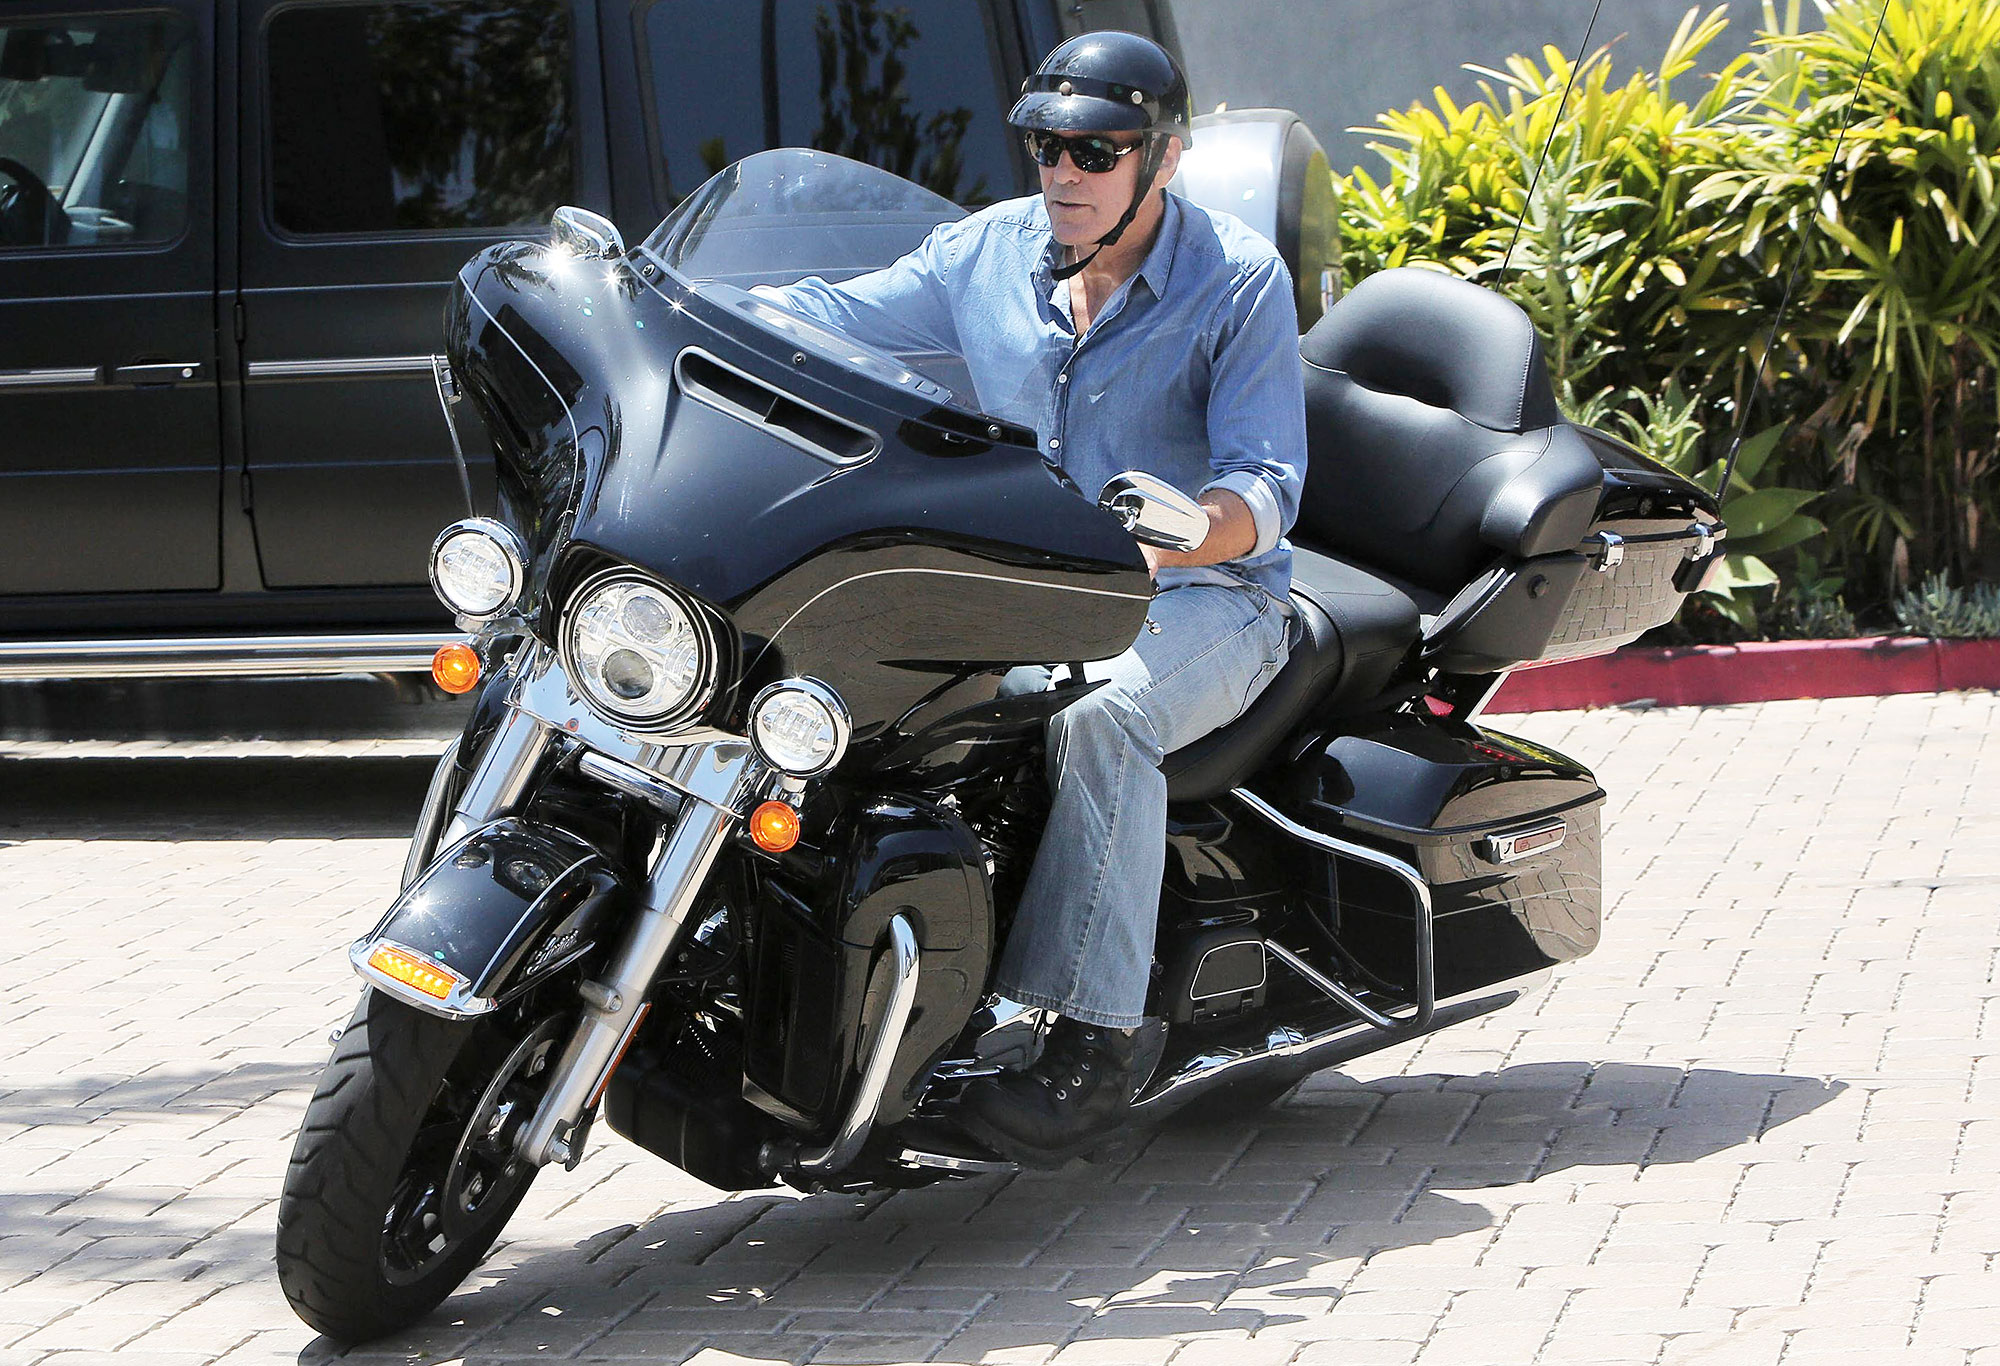 George Clooney Thought He Was Going to Die After Motorcycle Crash 2000x1366